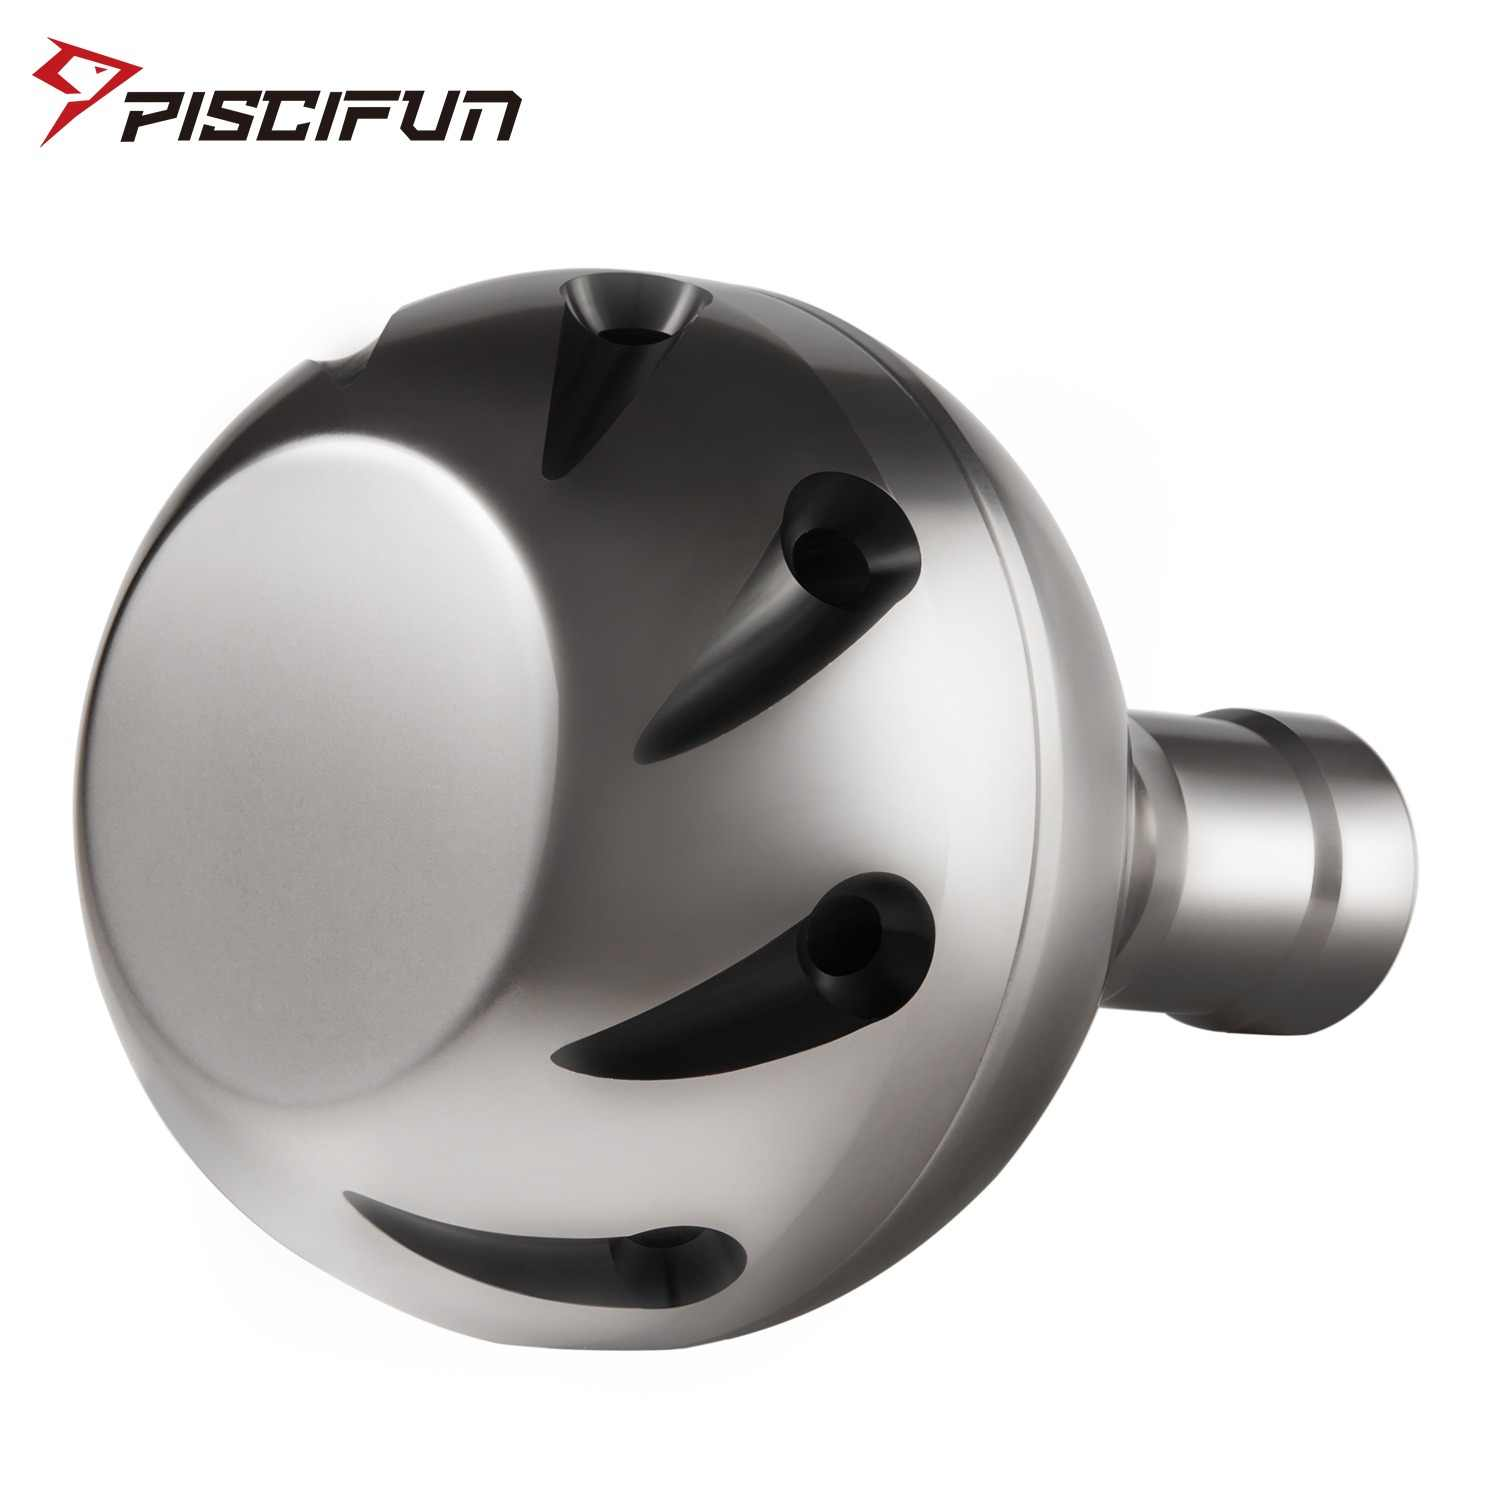 Piscifun 47mm Reel Handle Knob for Shimano B Stella SW Biomaster Saragosa Twinpower SW Power Knob